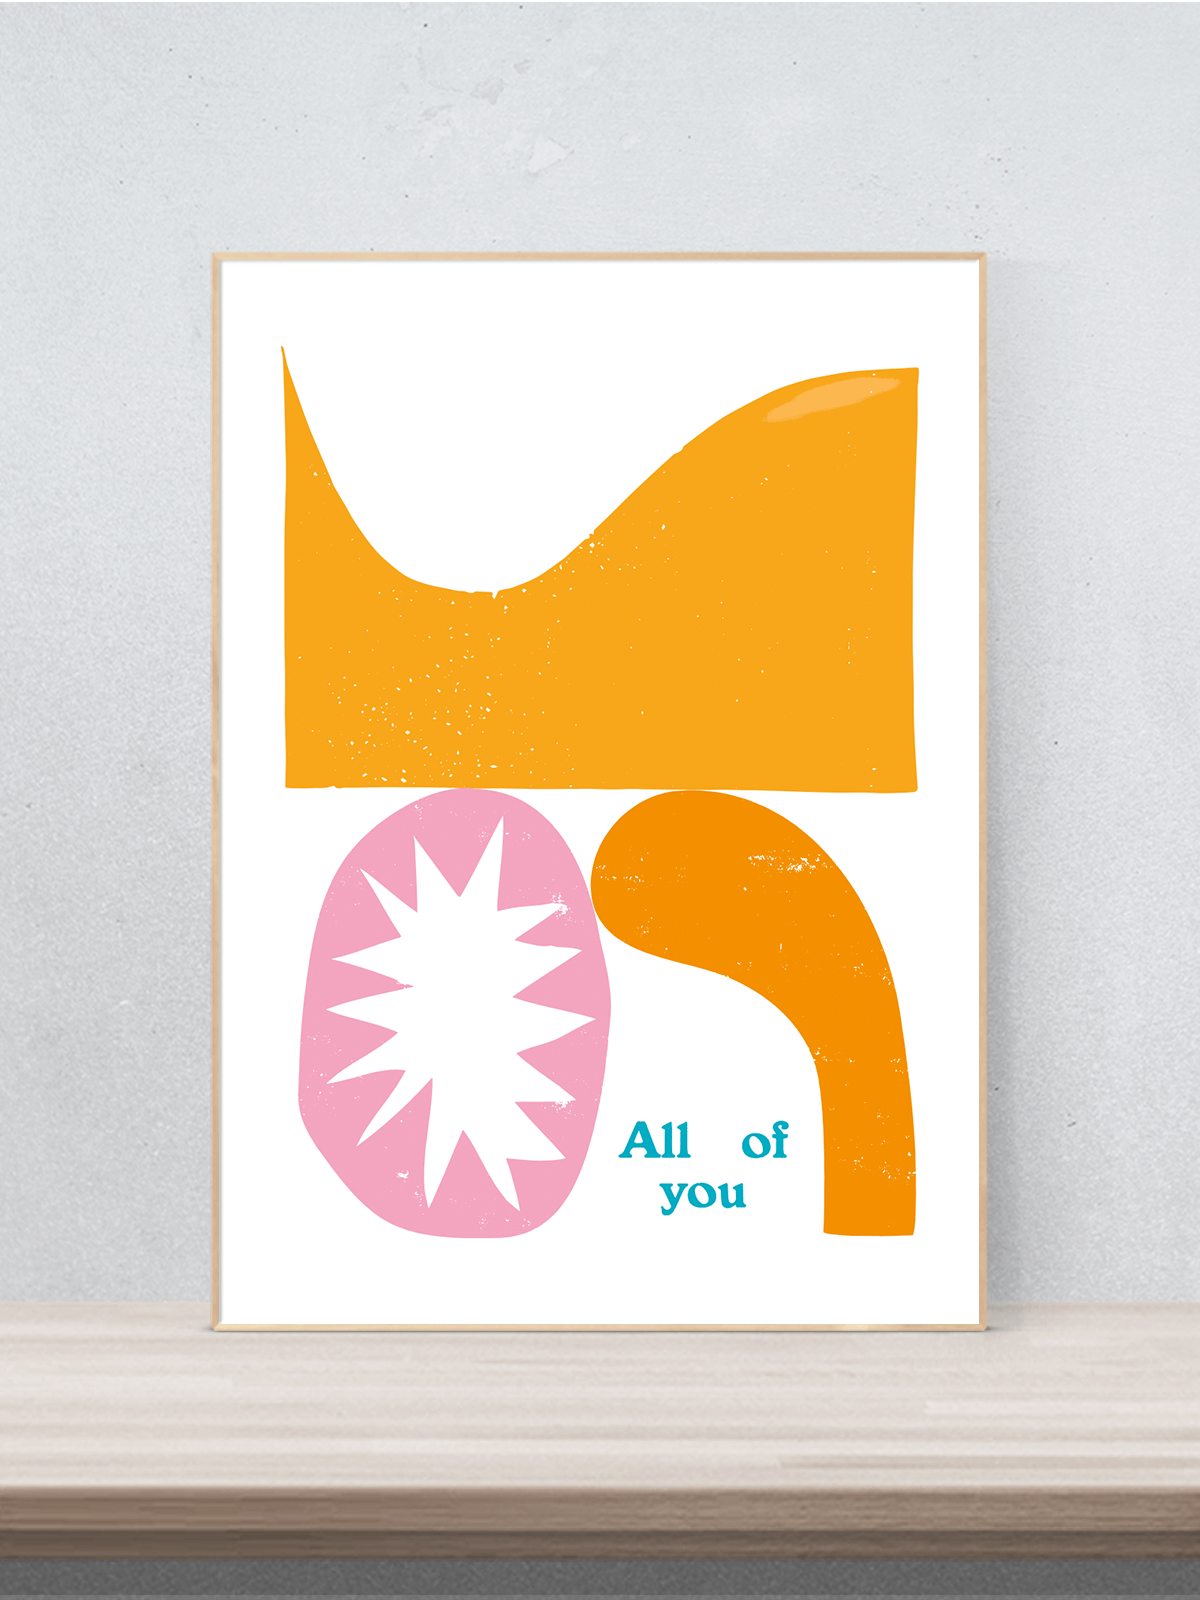 All of you, Digitaldruck signiert, modern, abstrakt, Poster, Druck